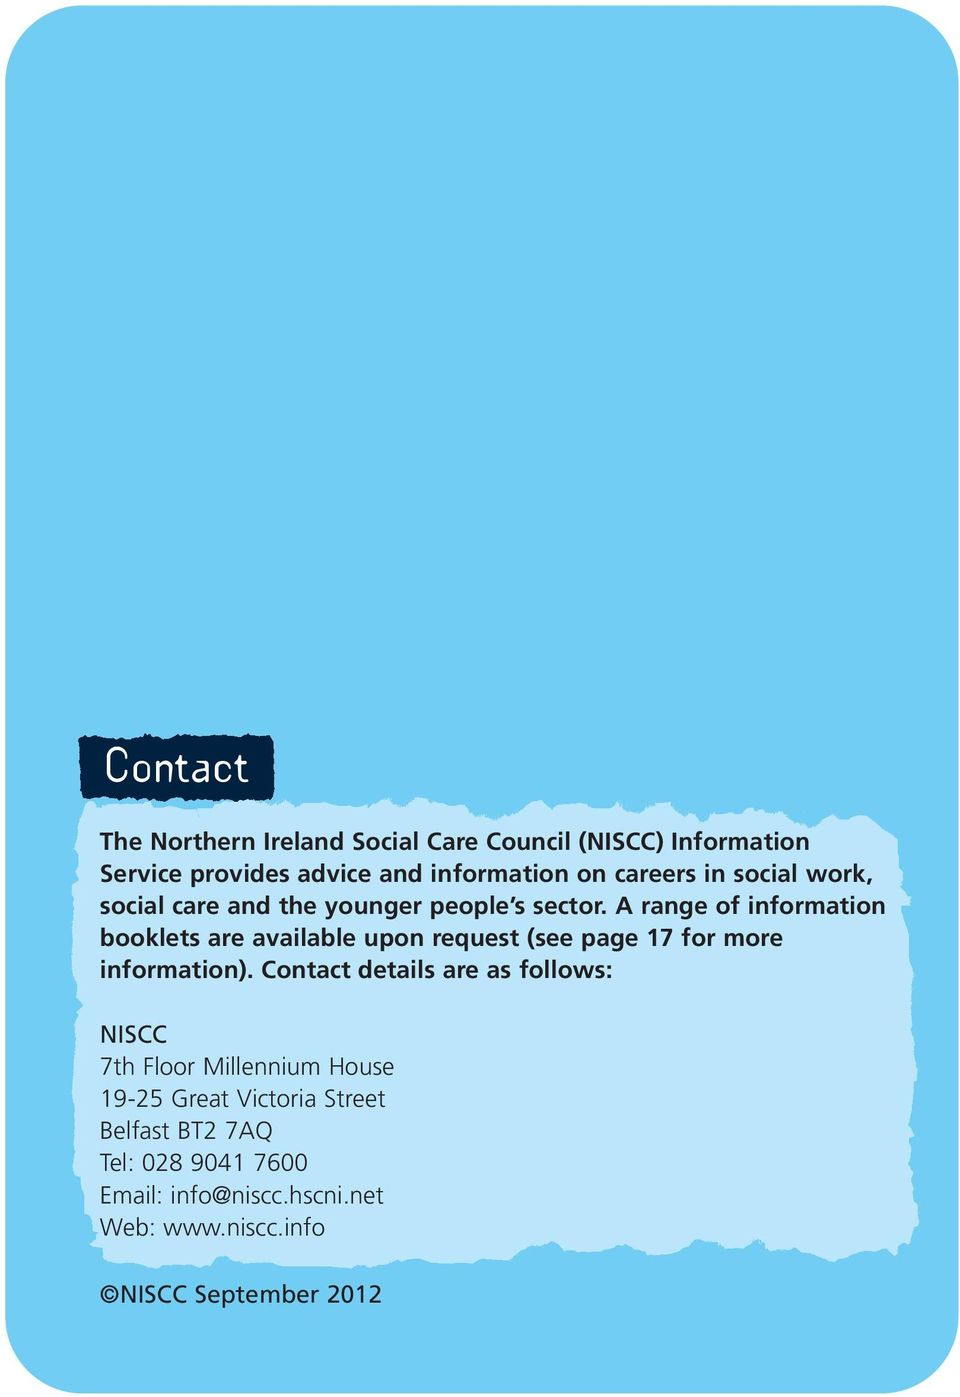 A range of information booklets are available upon request (see page 17 for more information).